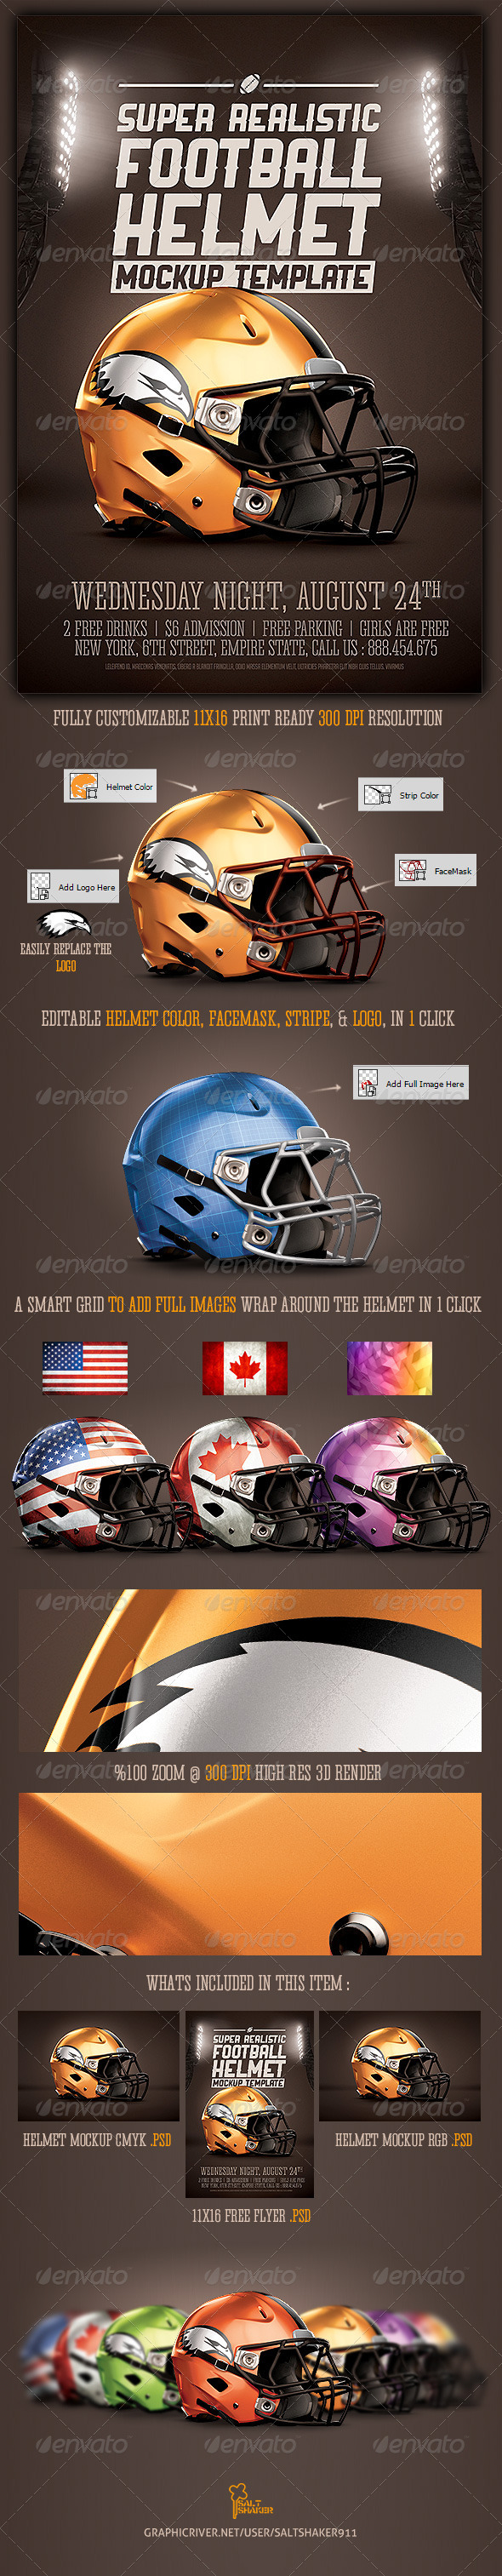 Realistic Football helmet Mockup Free Download #1 free download Realistic Football helmet Mockup Free Download #1 nulled Realistic Football helmet Mockup Free Download #1